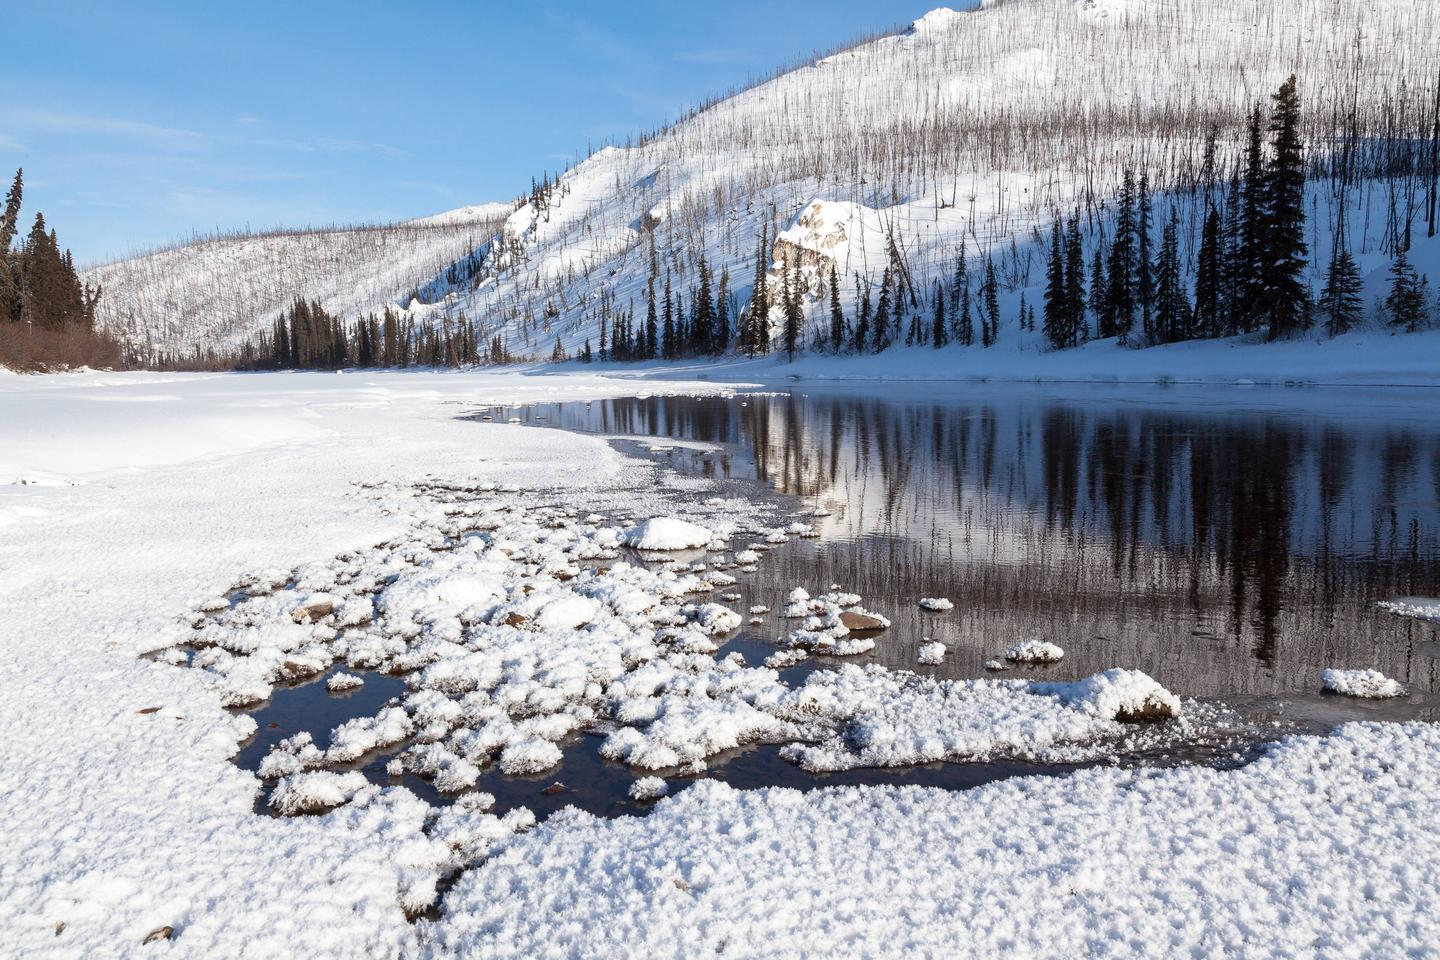 An open pool in a frozen river in snow-covered mountainsA spring keeps this section of Beaver Creek Wild and Scenic River from freezing despite frigid winter temperatures in the White Mountains.